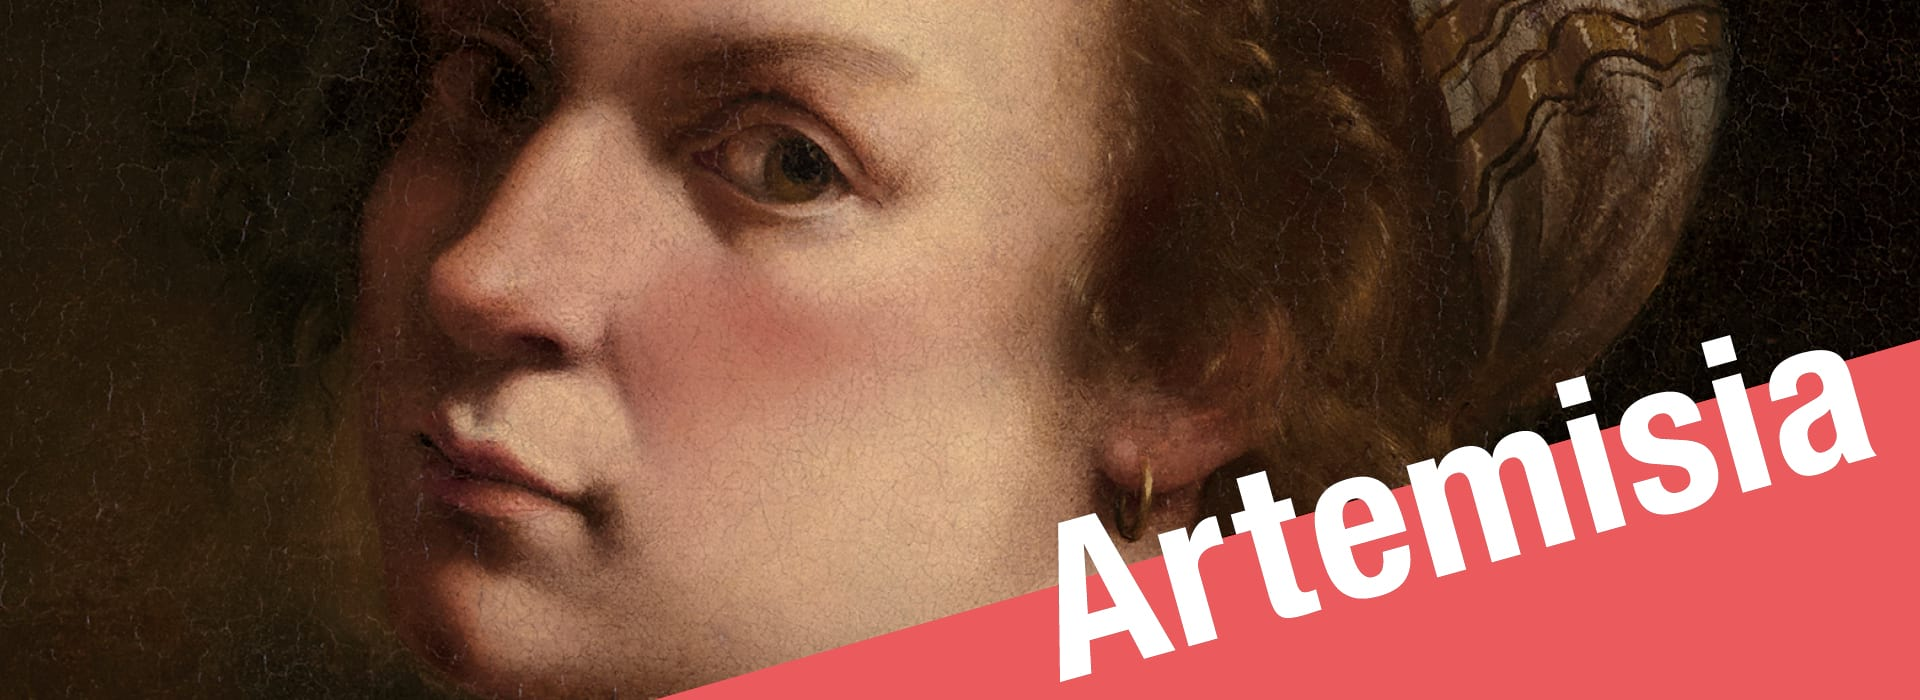 Artemisia | Exhibitions | National Gallery, London